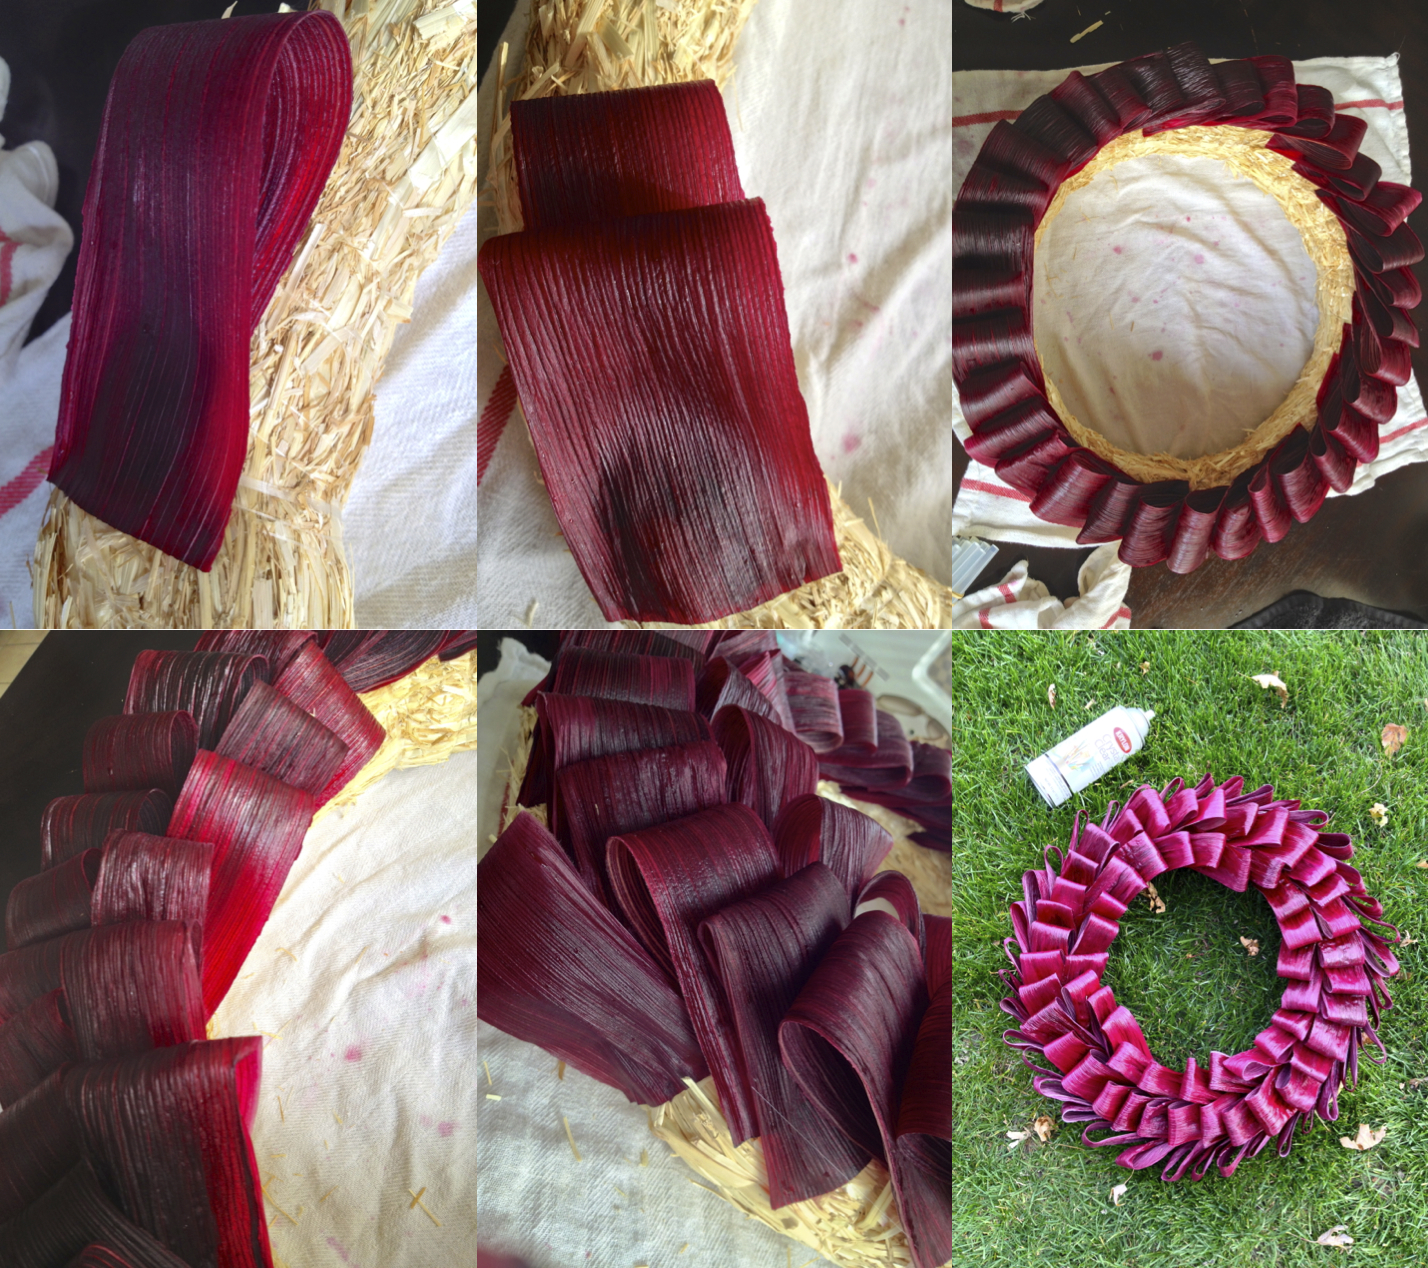 Dyed Corn Husk Wreath Making It With Danielle